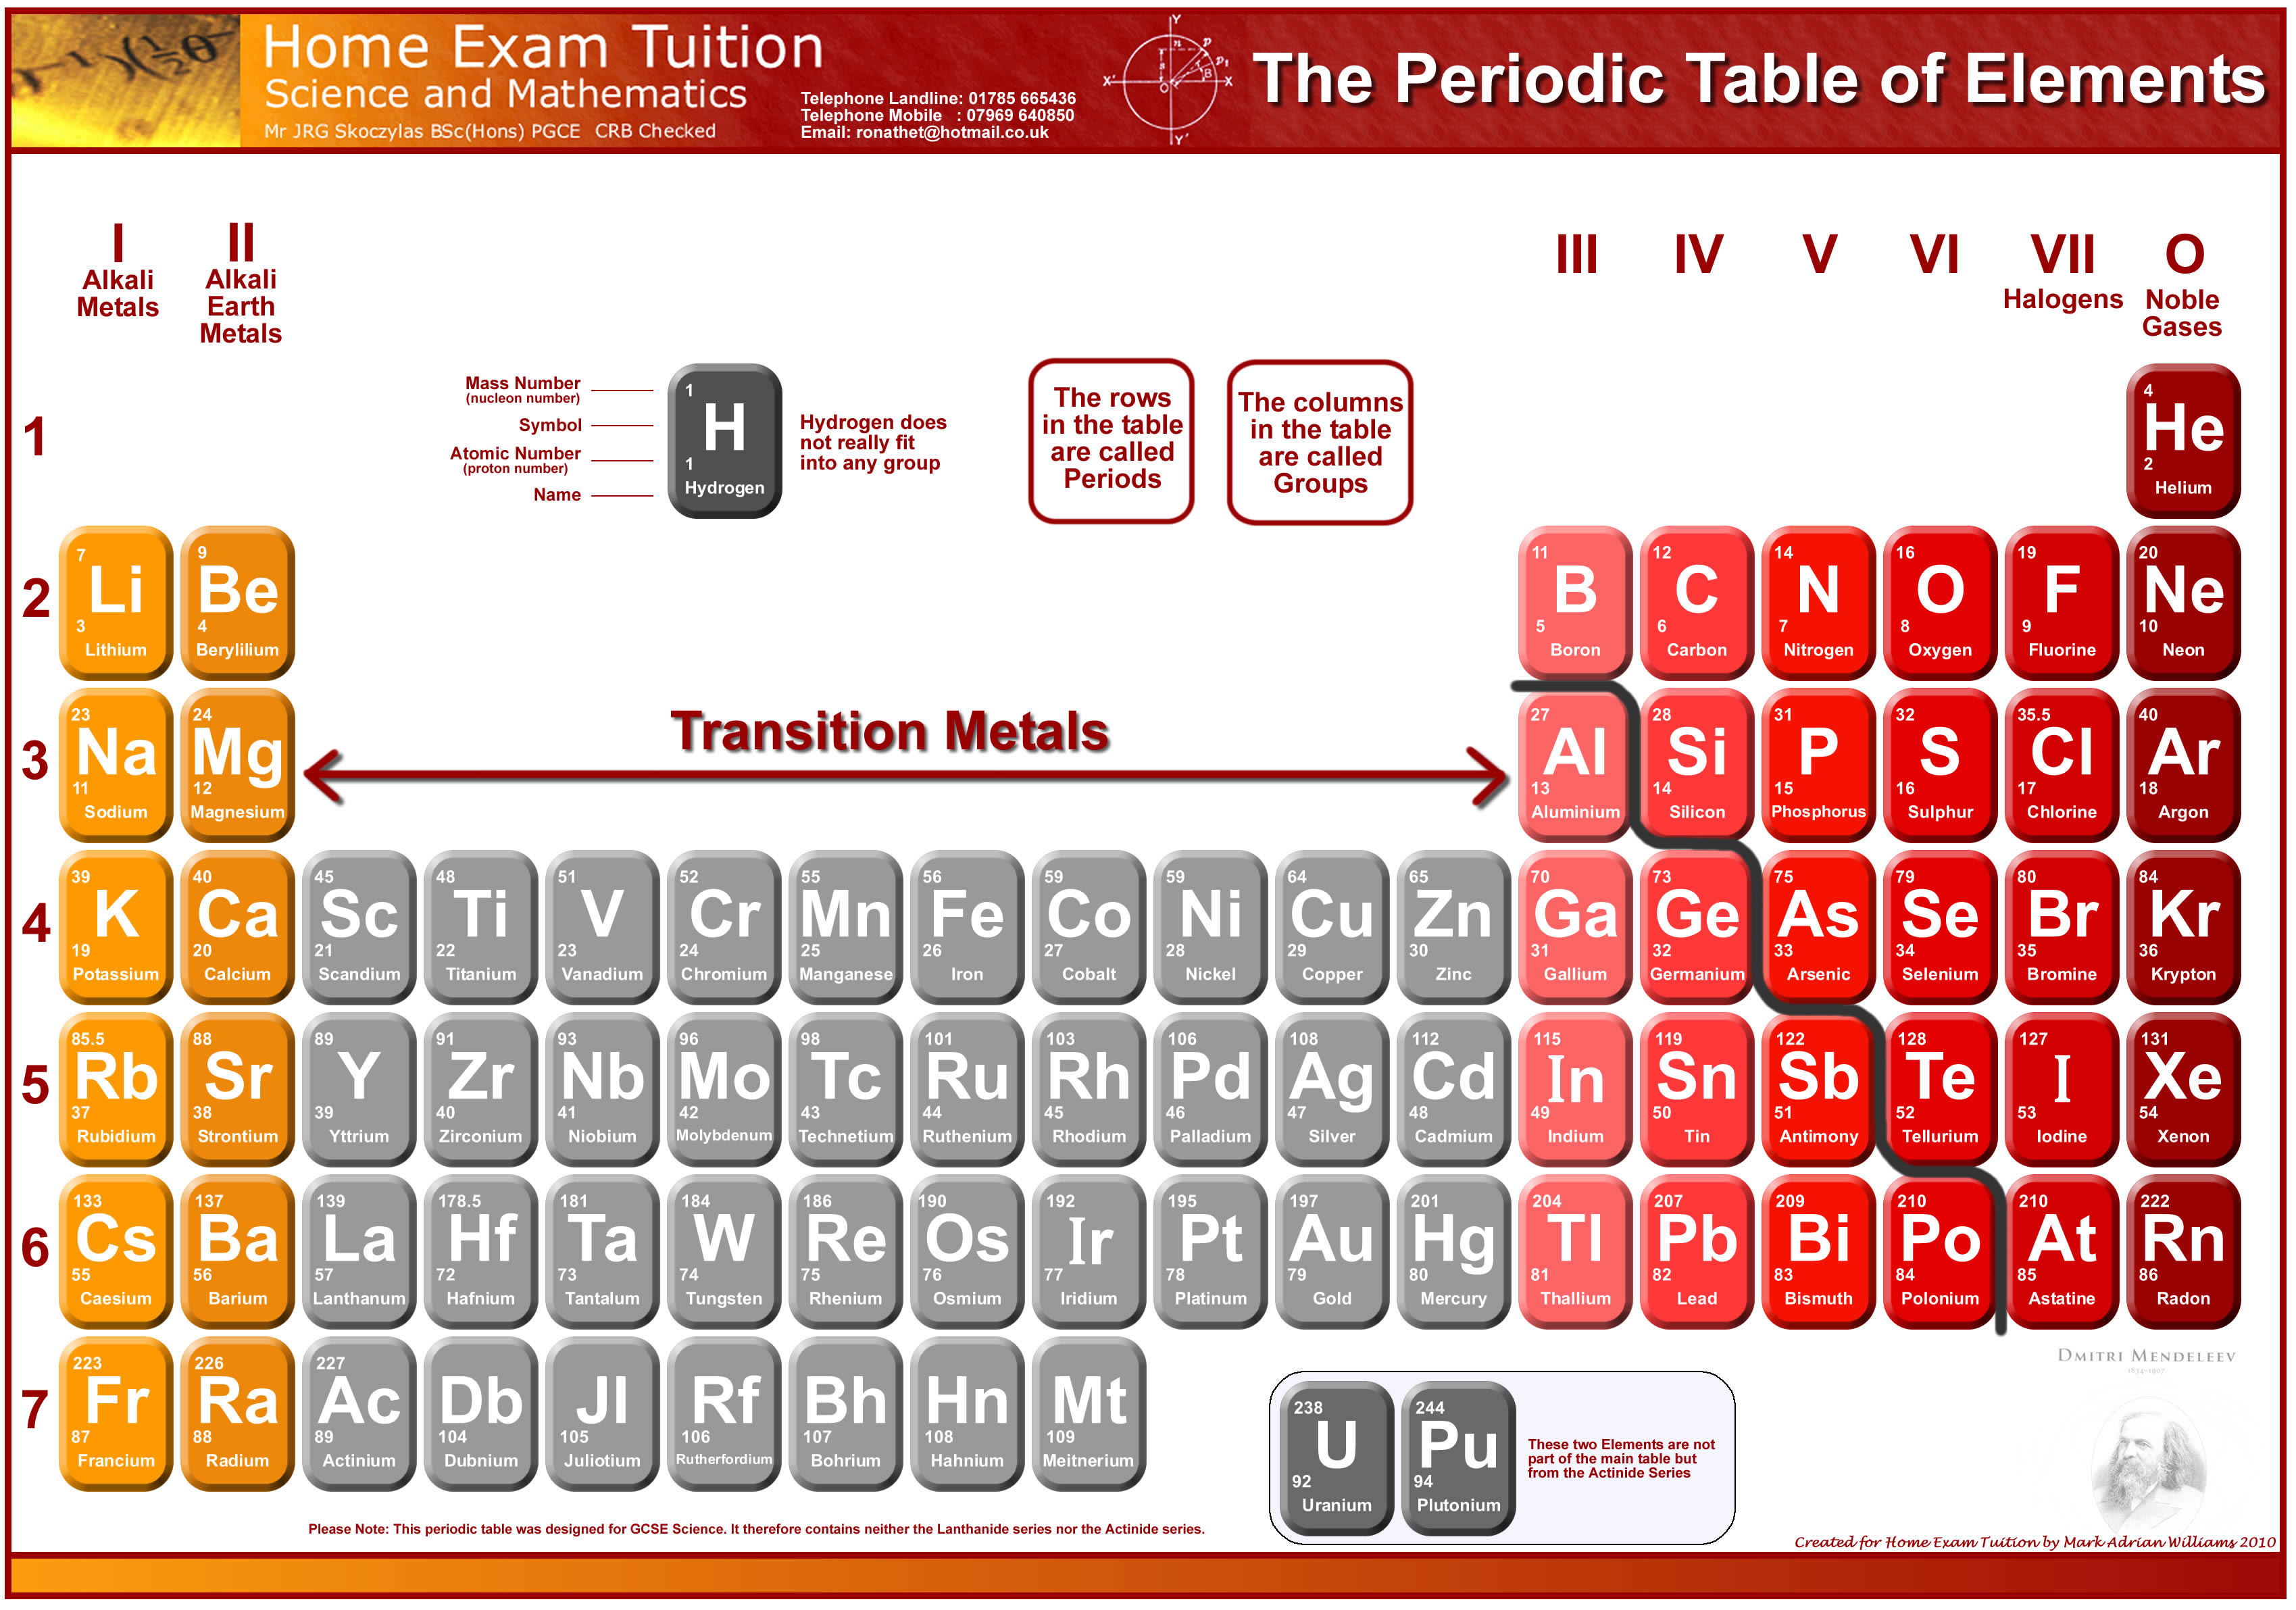 Home exam tuition website free periodic table free home exam tuition periodic table gamestrikefo Images